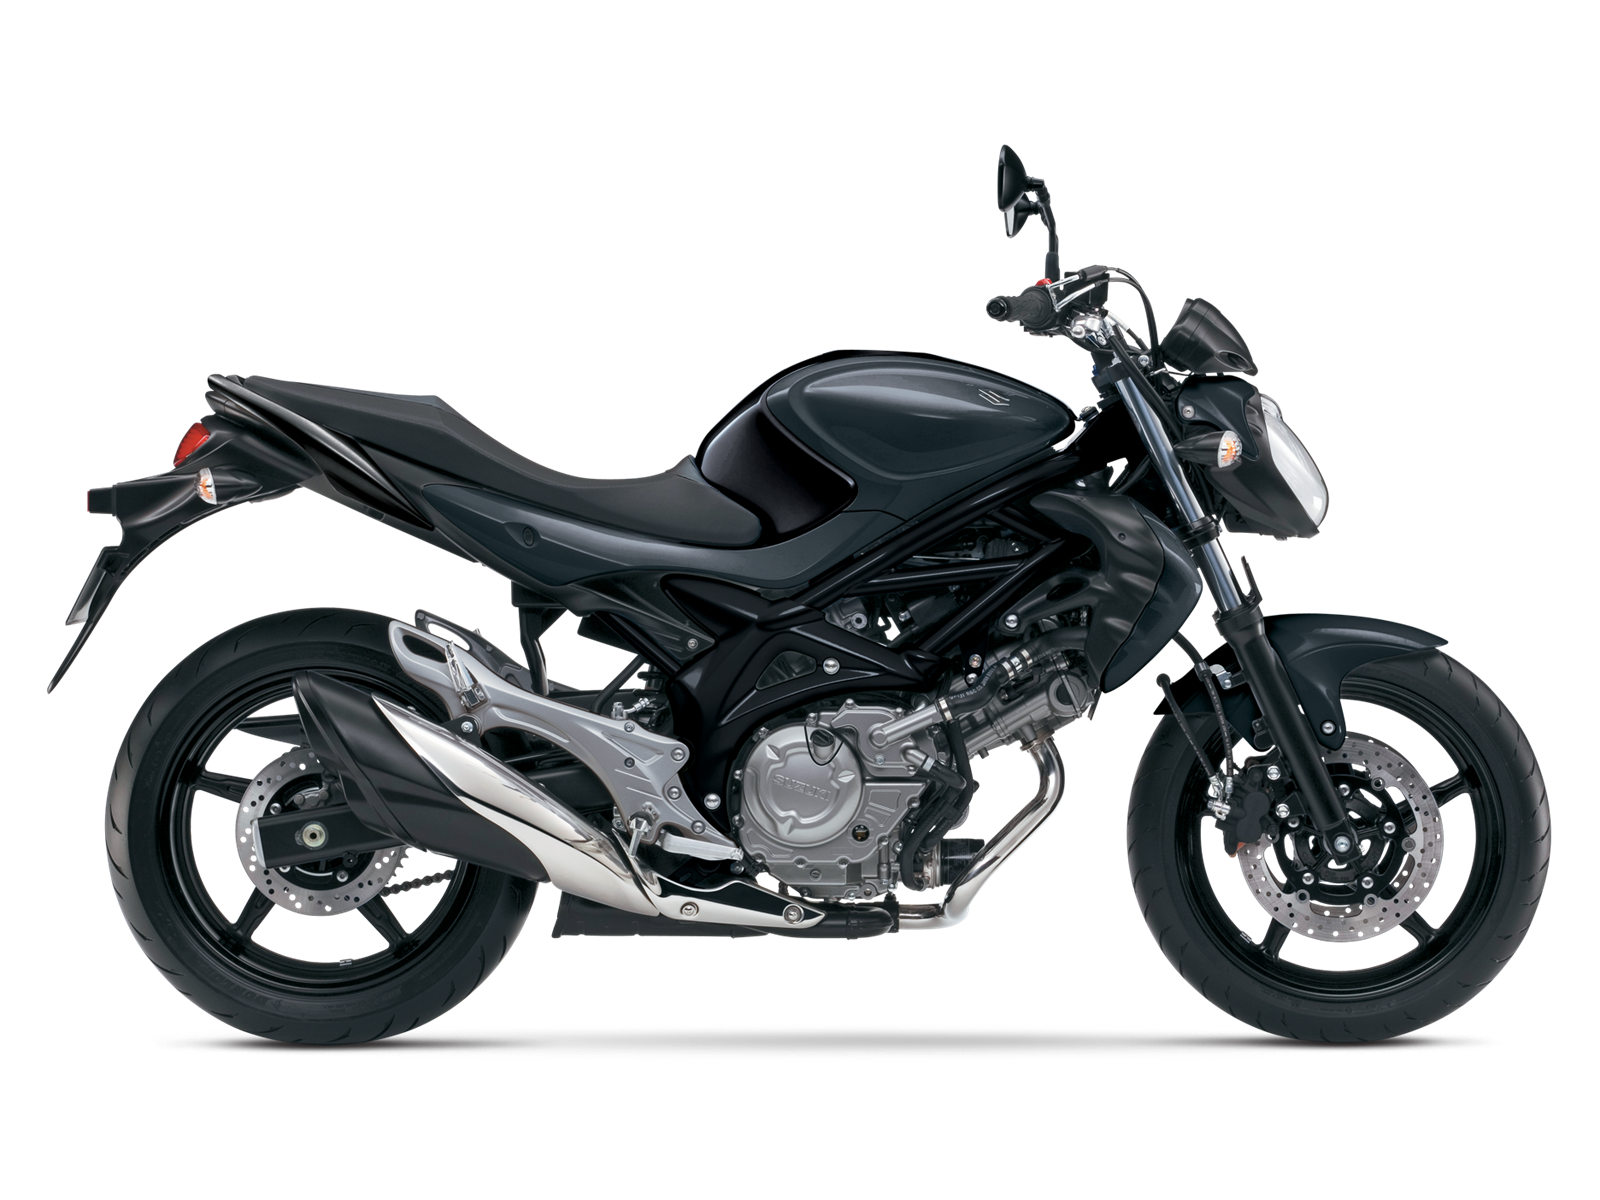 Moto PNG image, motorcycle PNG picture download